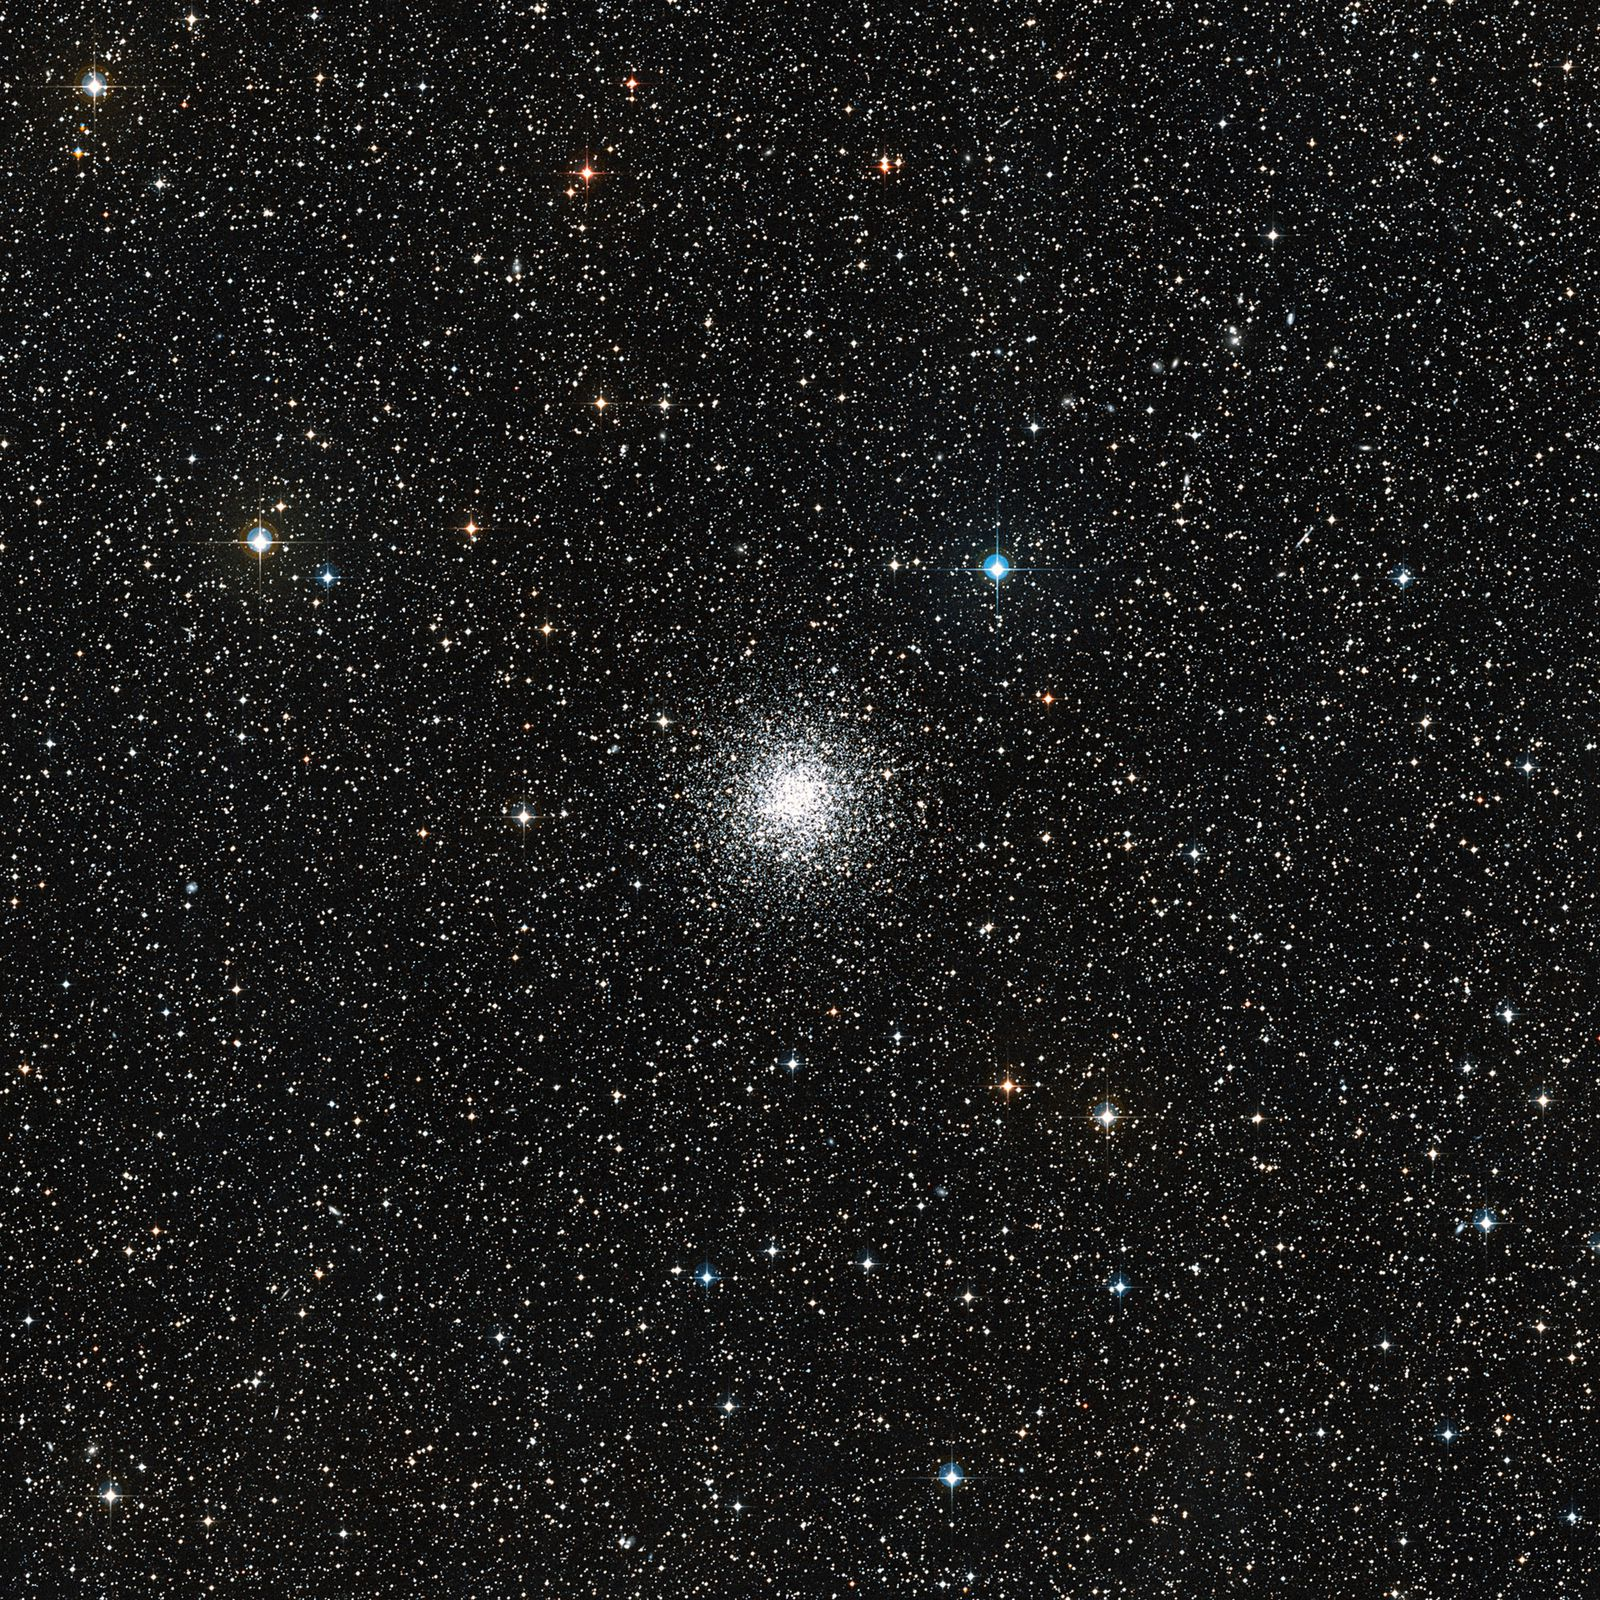 NGC 6362 in campo largo. Cortesia: ESO / Digitized Sky Survey 2 / Davide De Martin